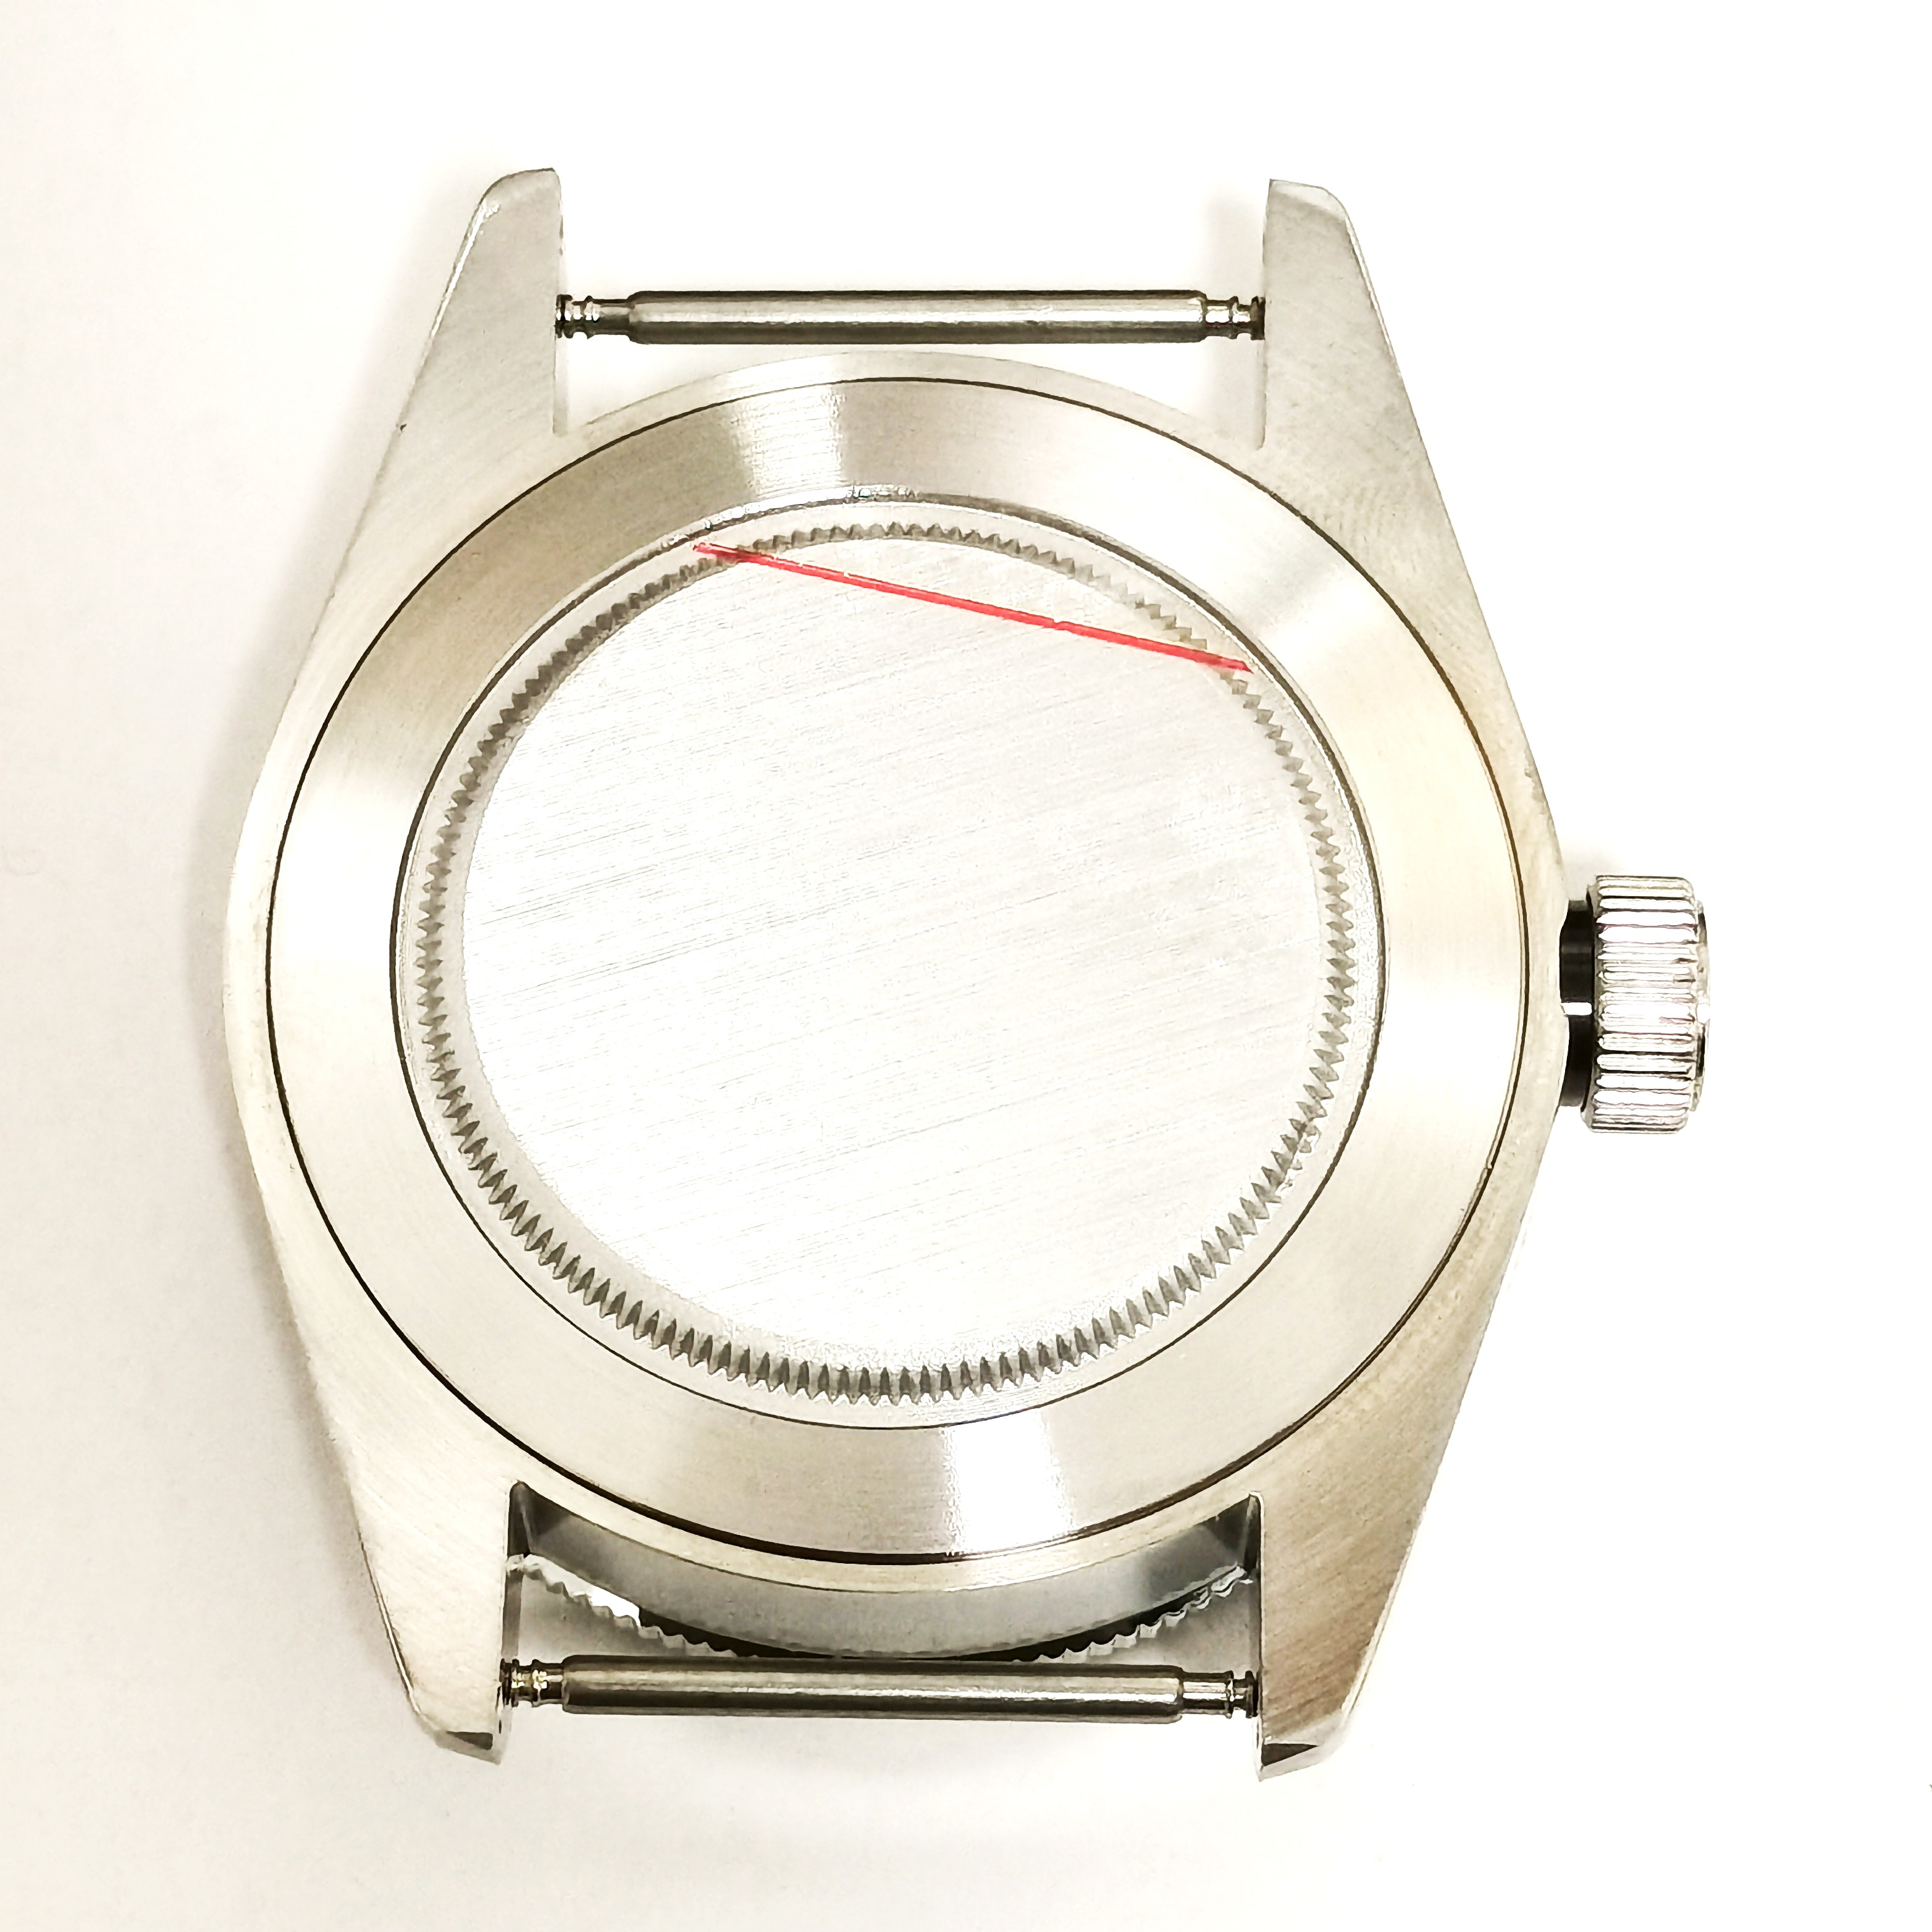 40MM  Man's Watch Part 316 Stainless Steel Case Dial And Hands Set For Automatic Movement ETA 2836 ST2130 Miyota8215 enlarge